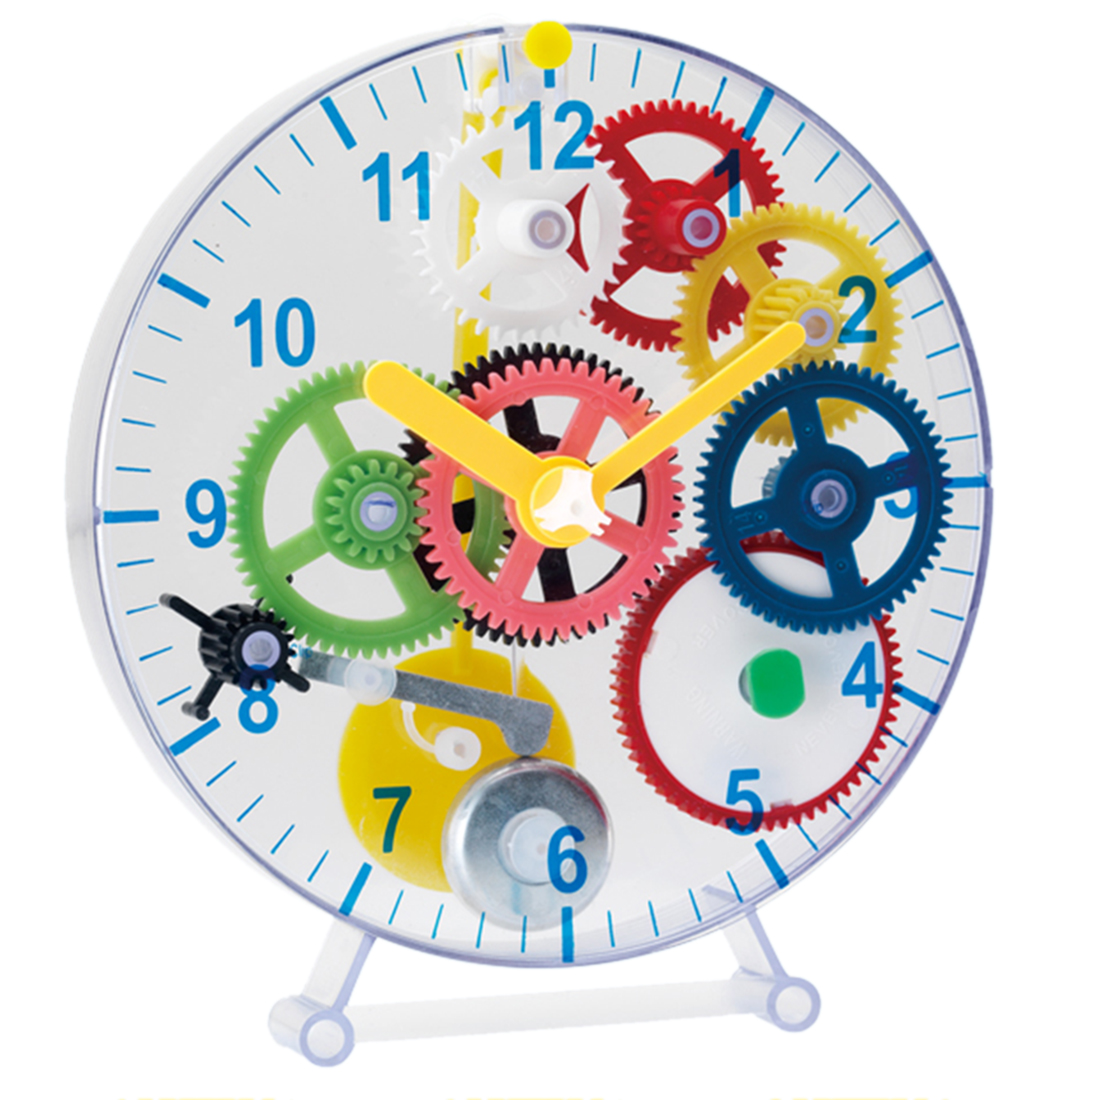 Children Puzzle Clock Kit DIY Gear Mechanical Clock Educational Assembling Gear Clock Toy Learning & Education Science Toy